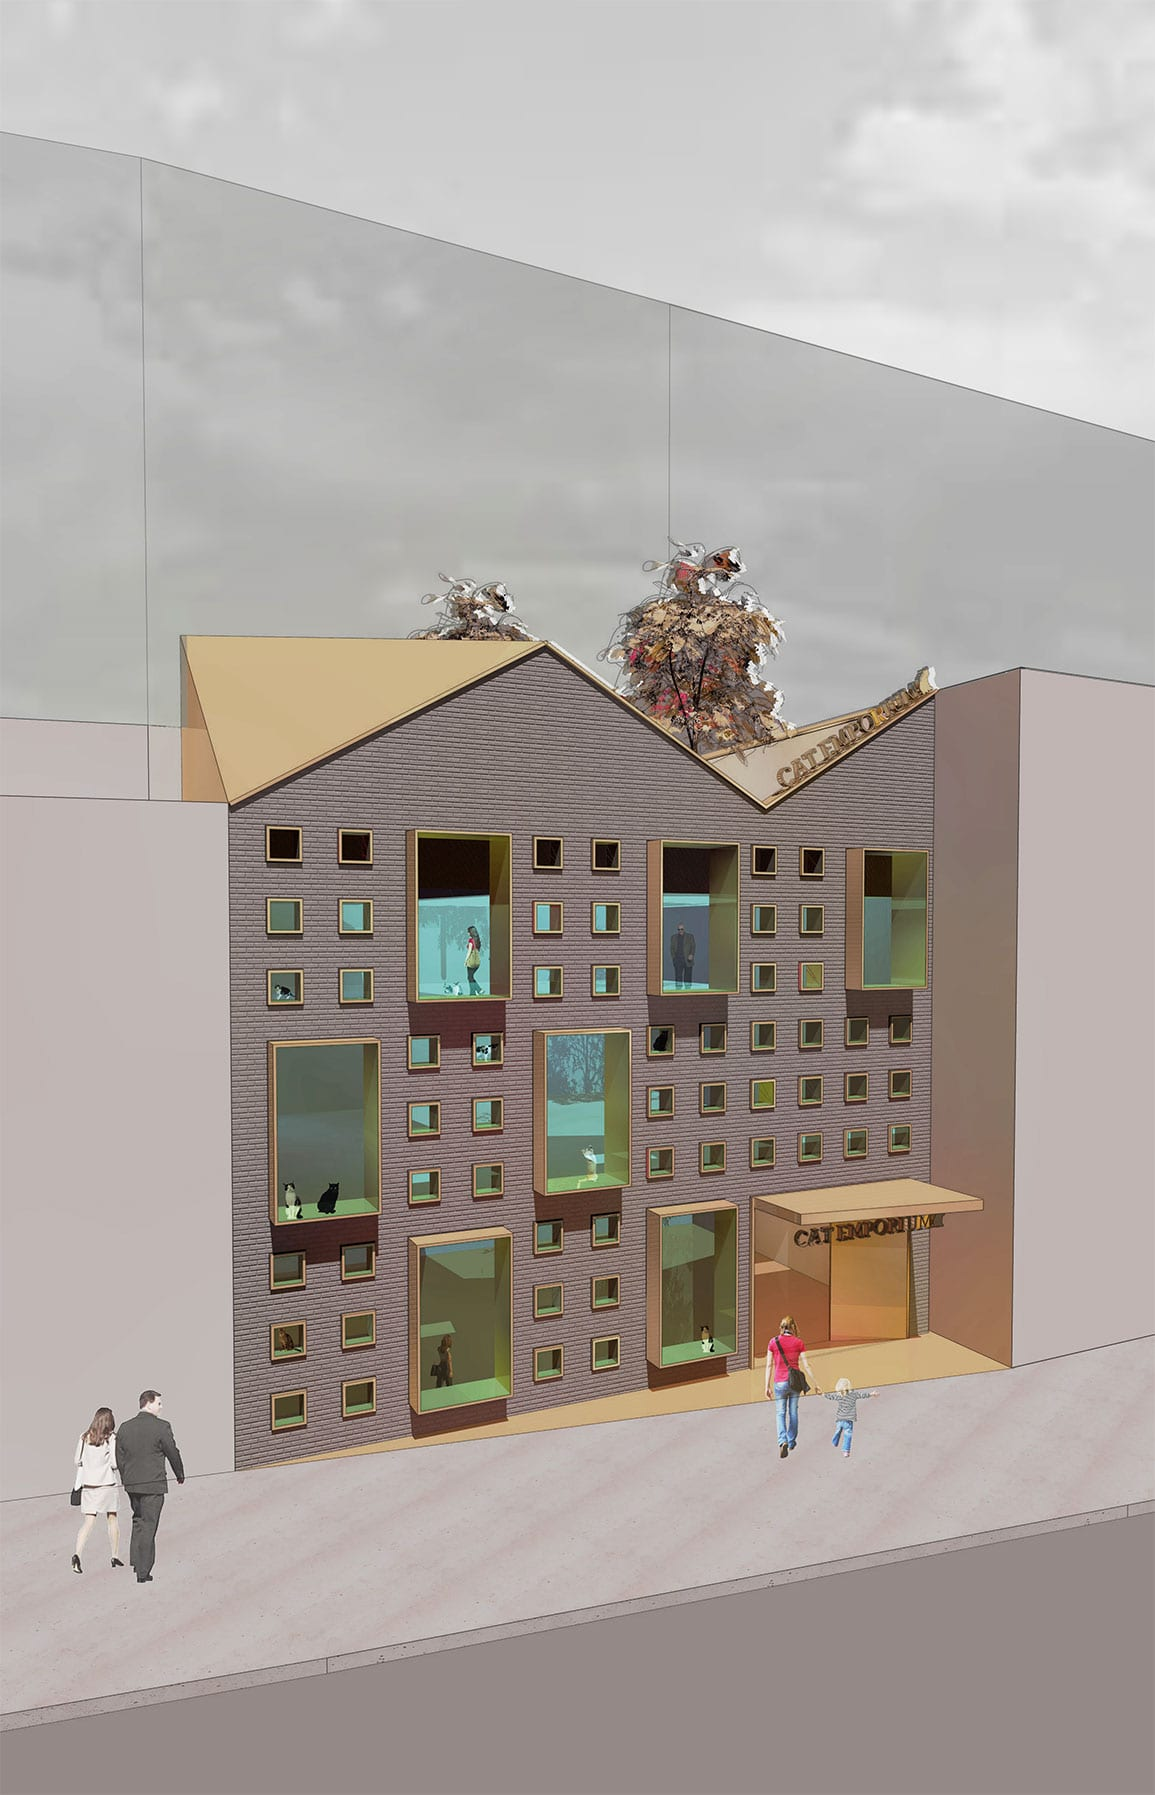 Cat Emporium Facade Lime St Alternative Proposal Architectural Emporium 3d